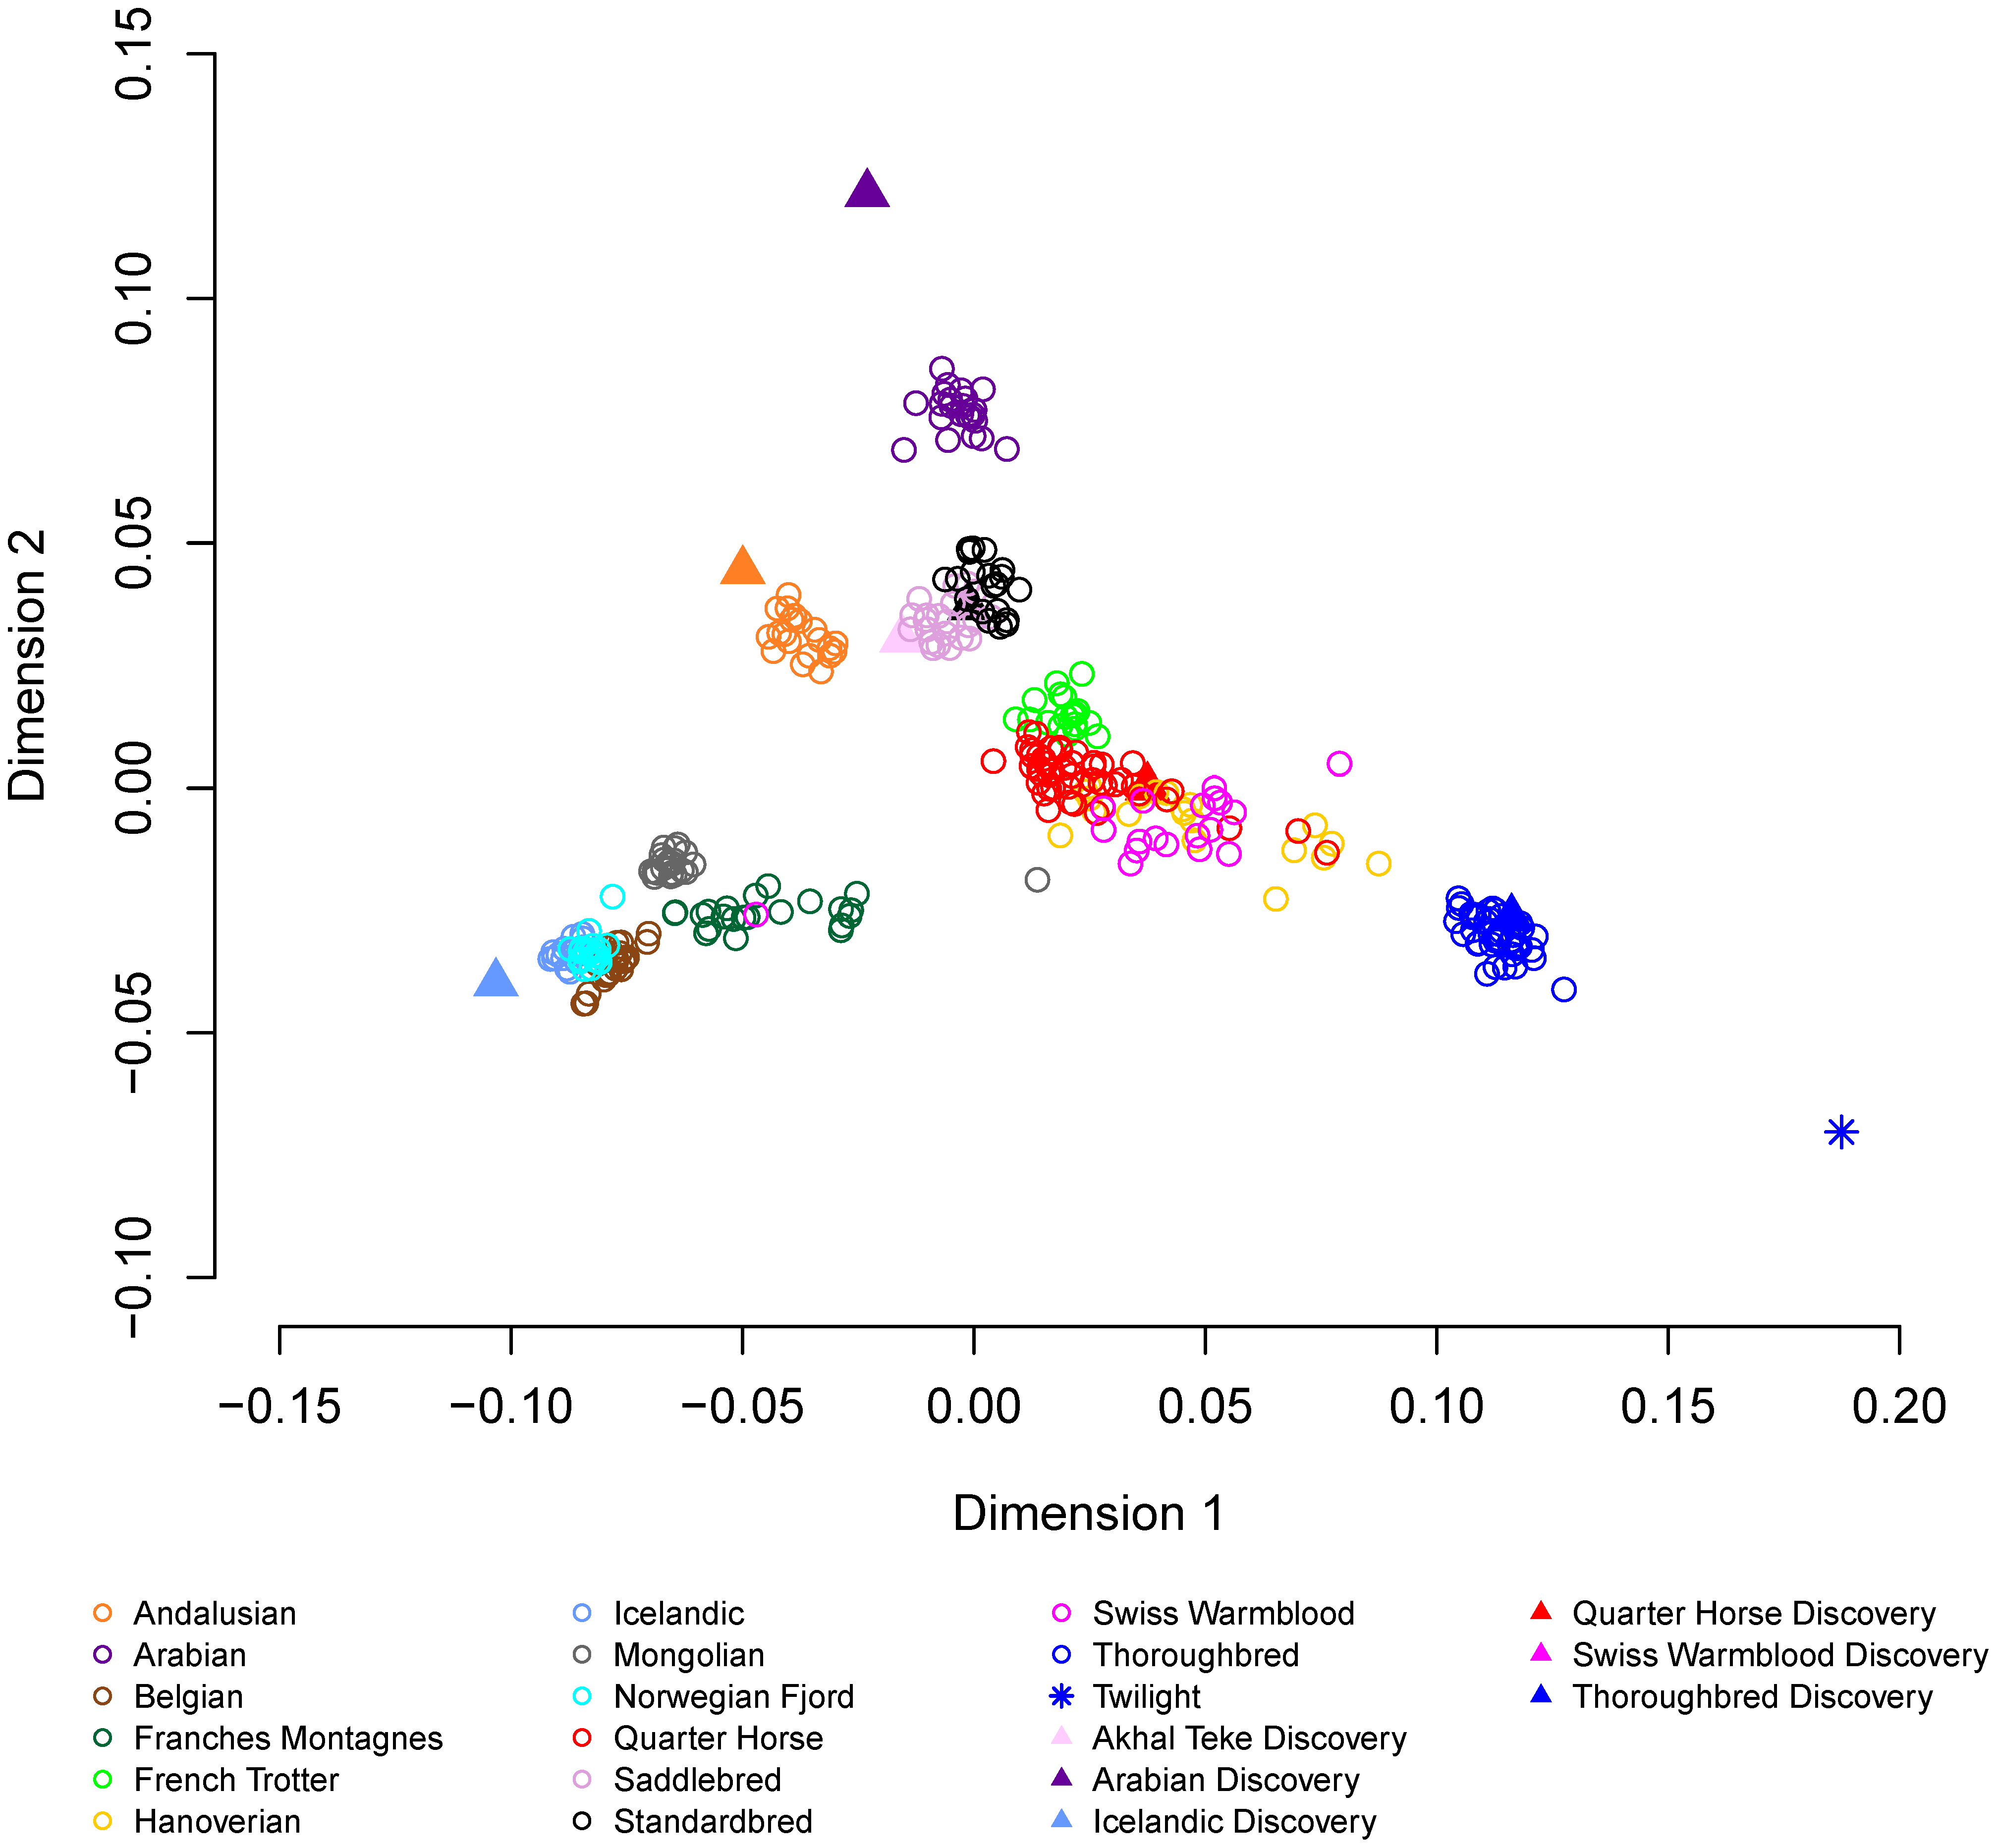 Multidimensional scaling with 14 domestic horse breeds.